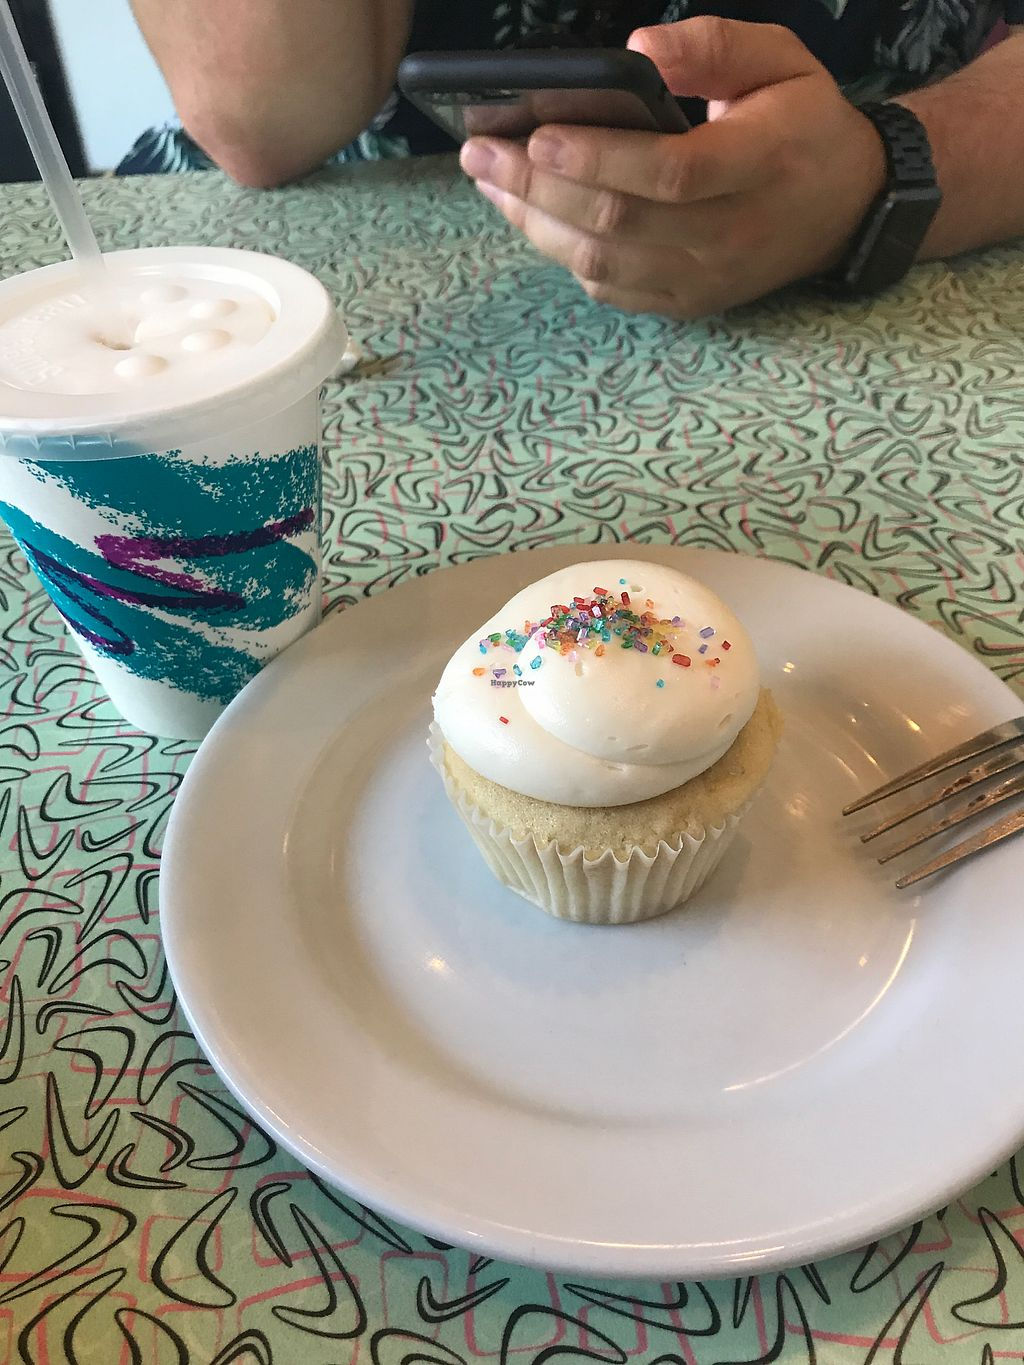 """Photo of Sticky Fingers Bakery  by <a href=""""/members/profile/GenChandy"""">GenChandy</a> <br/>Vanilla milkshake and cupcake  <br/> September 4, 2017  - <a href='/contact/abuse/image/1792/300696'>Report</a>"""